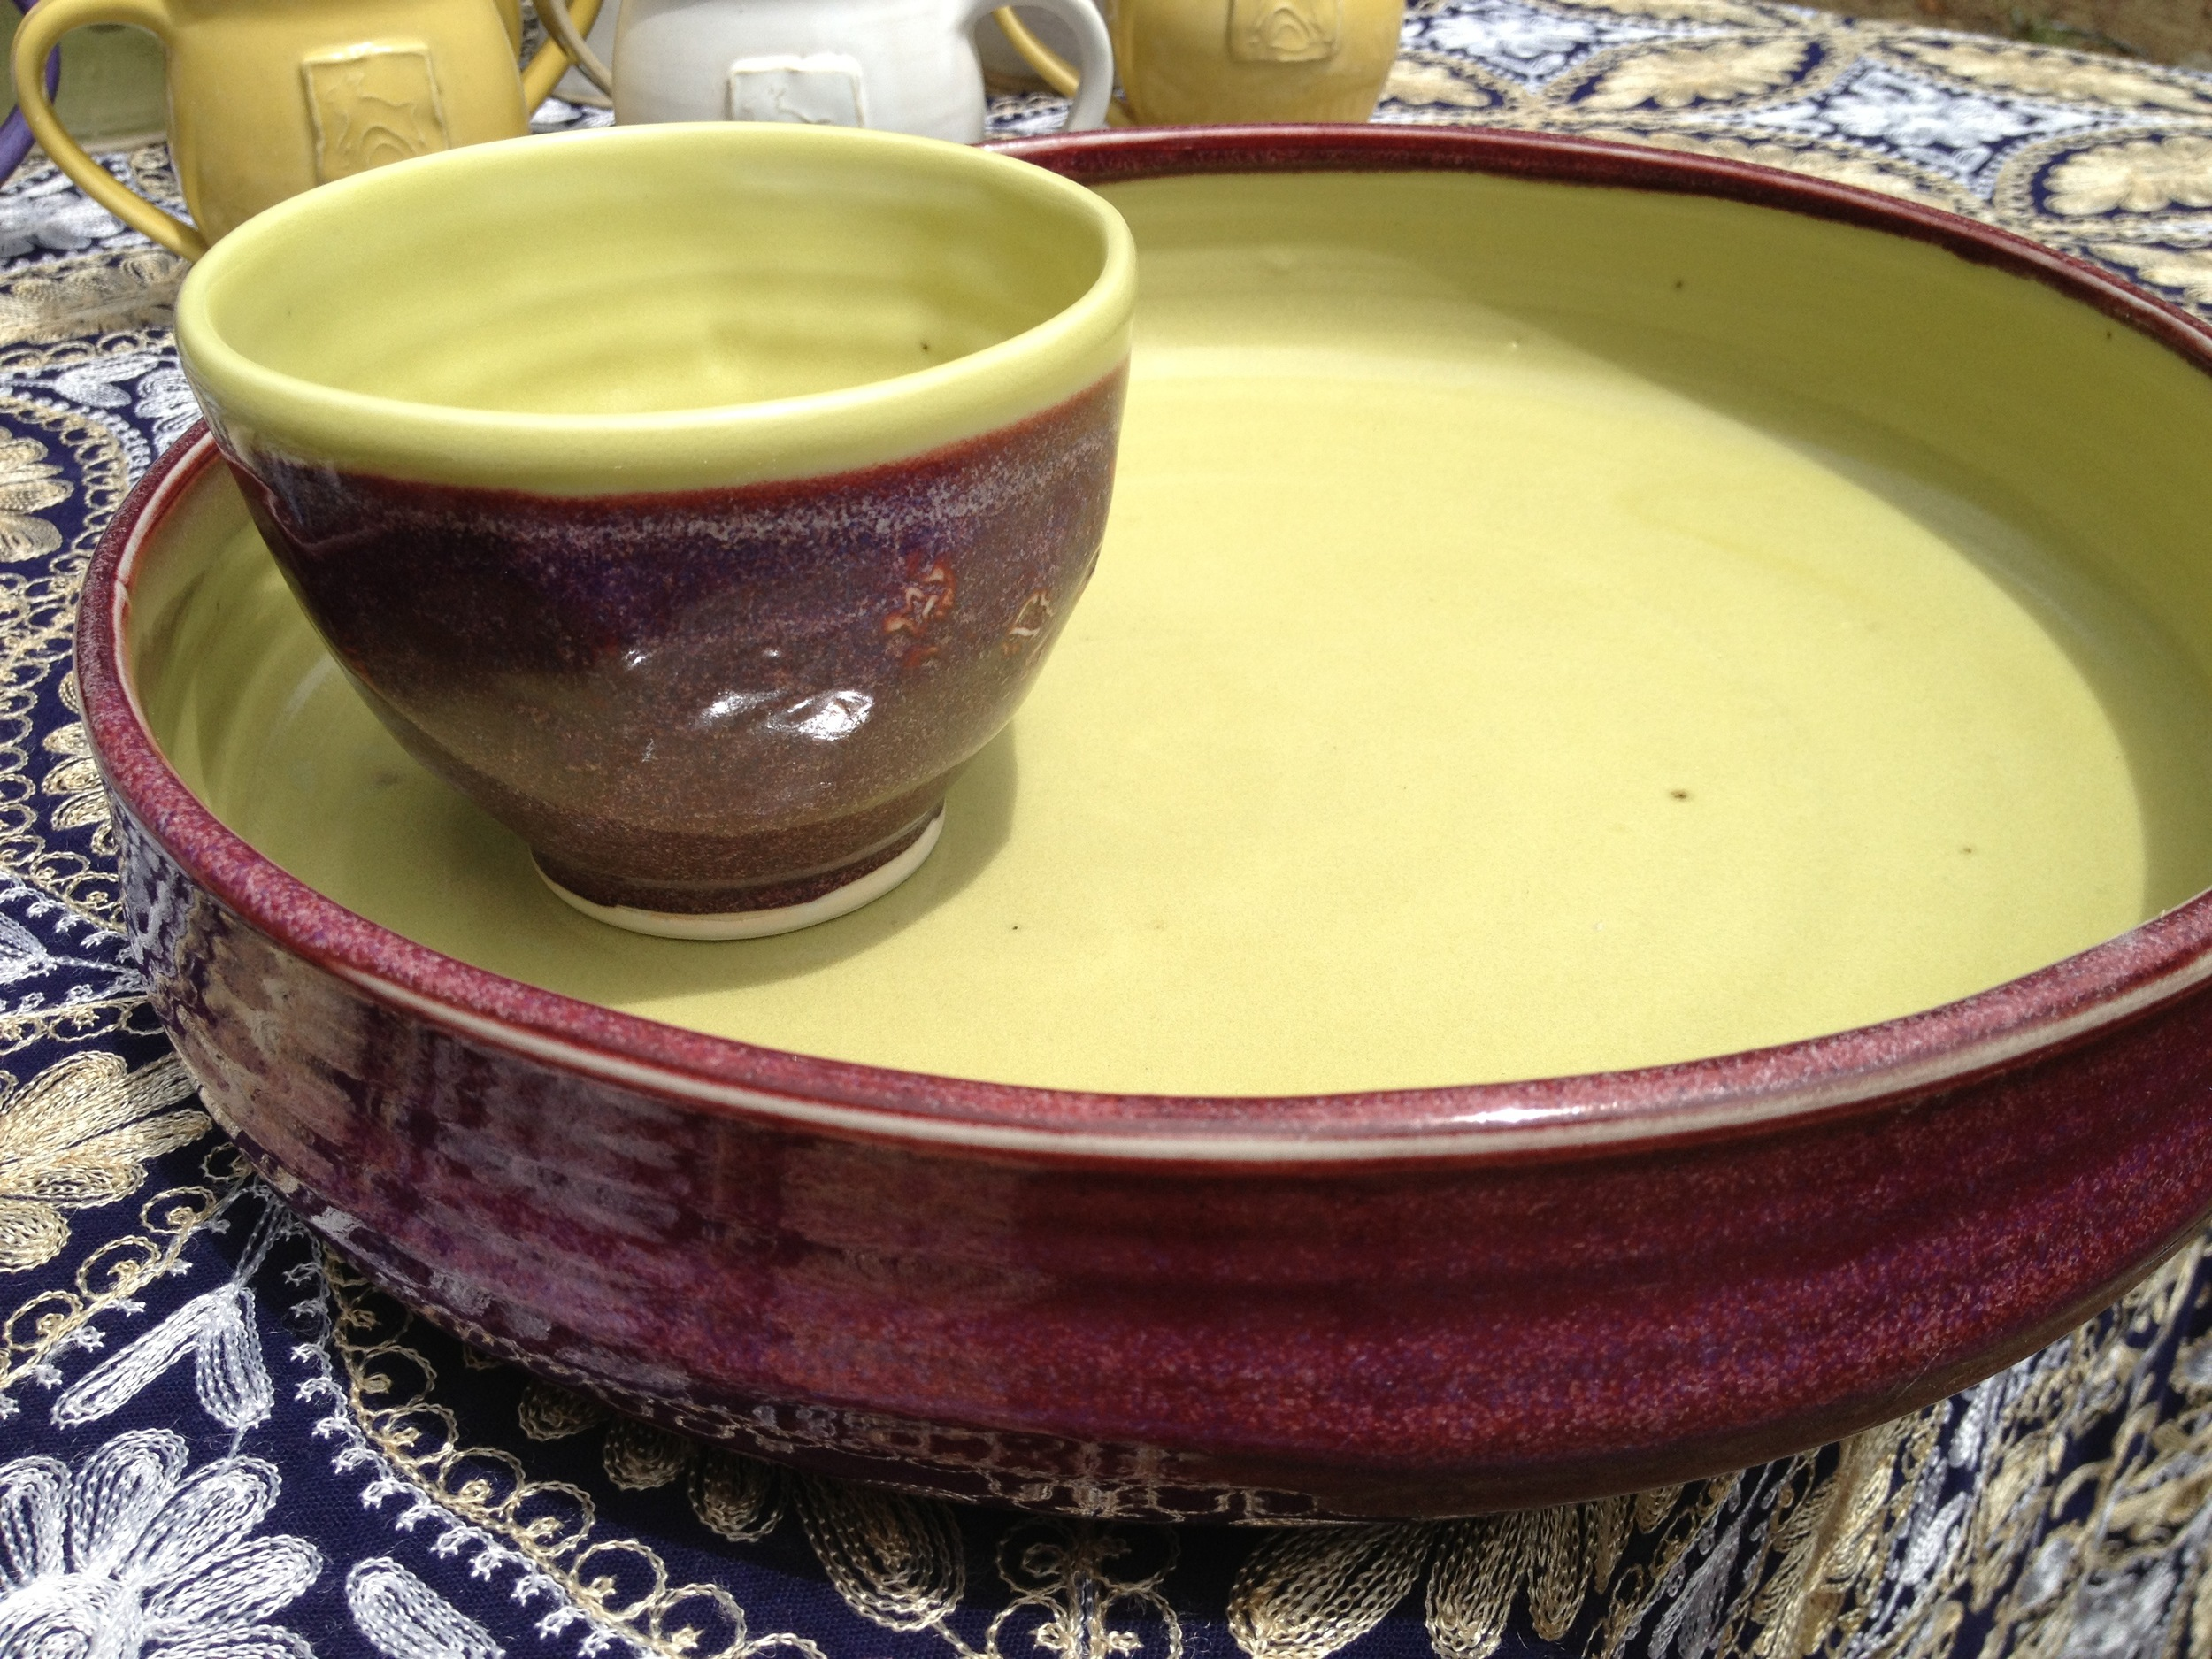 Large platter and matching bowl